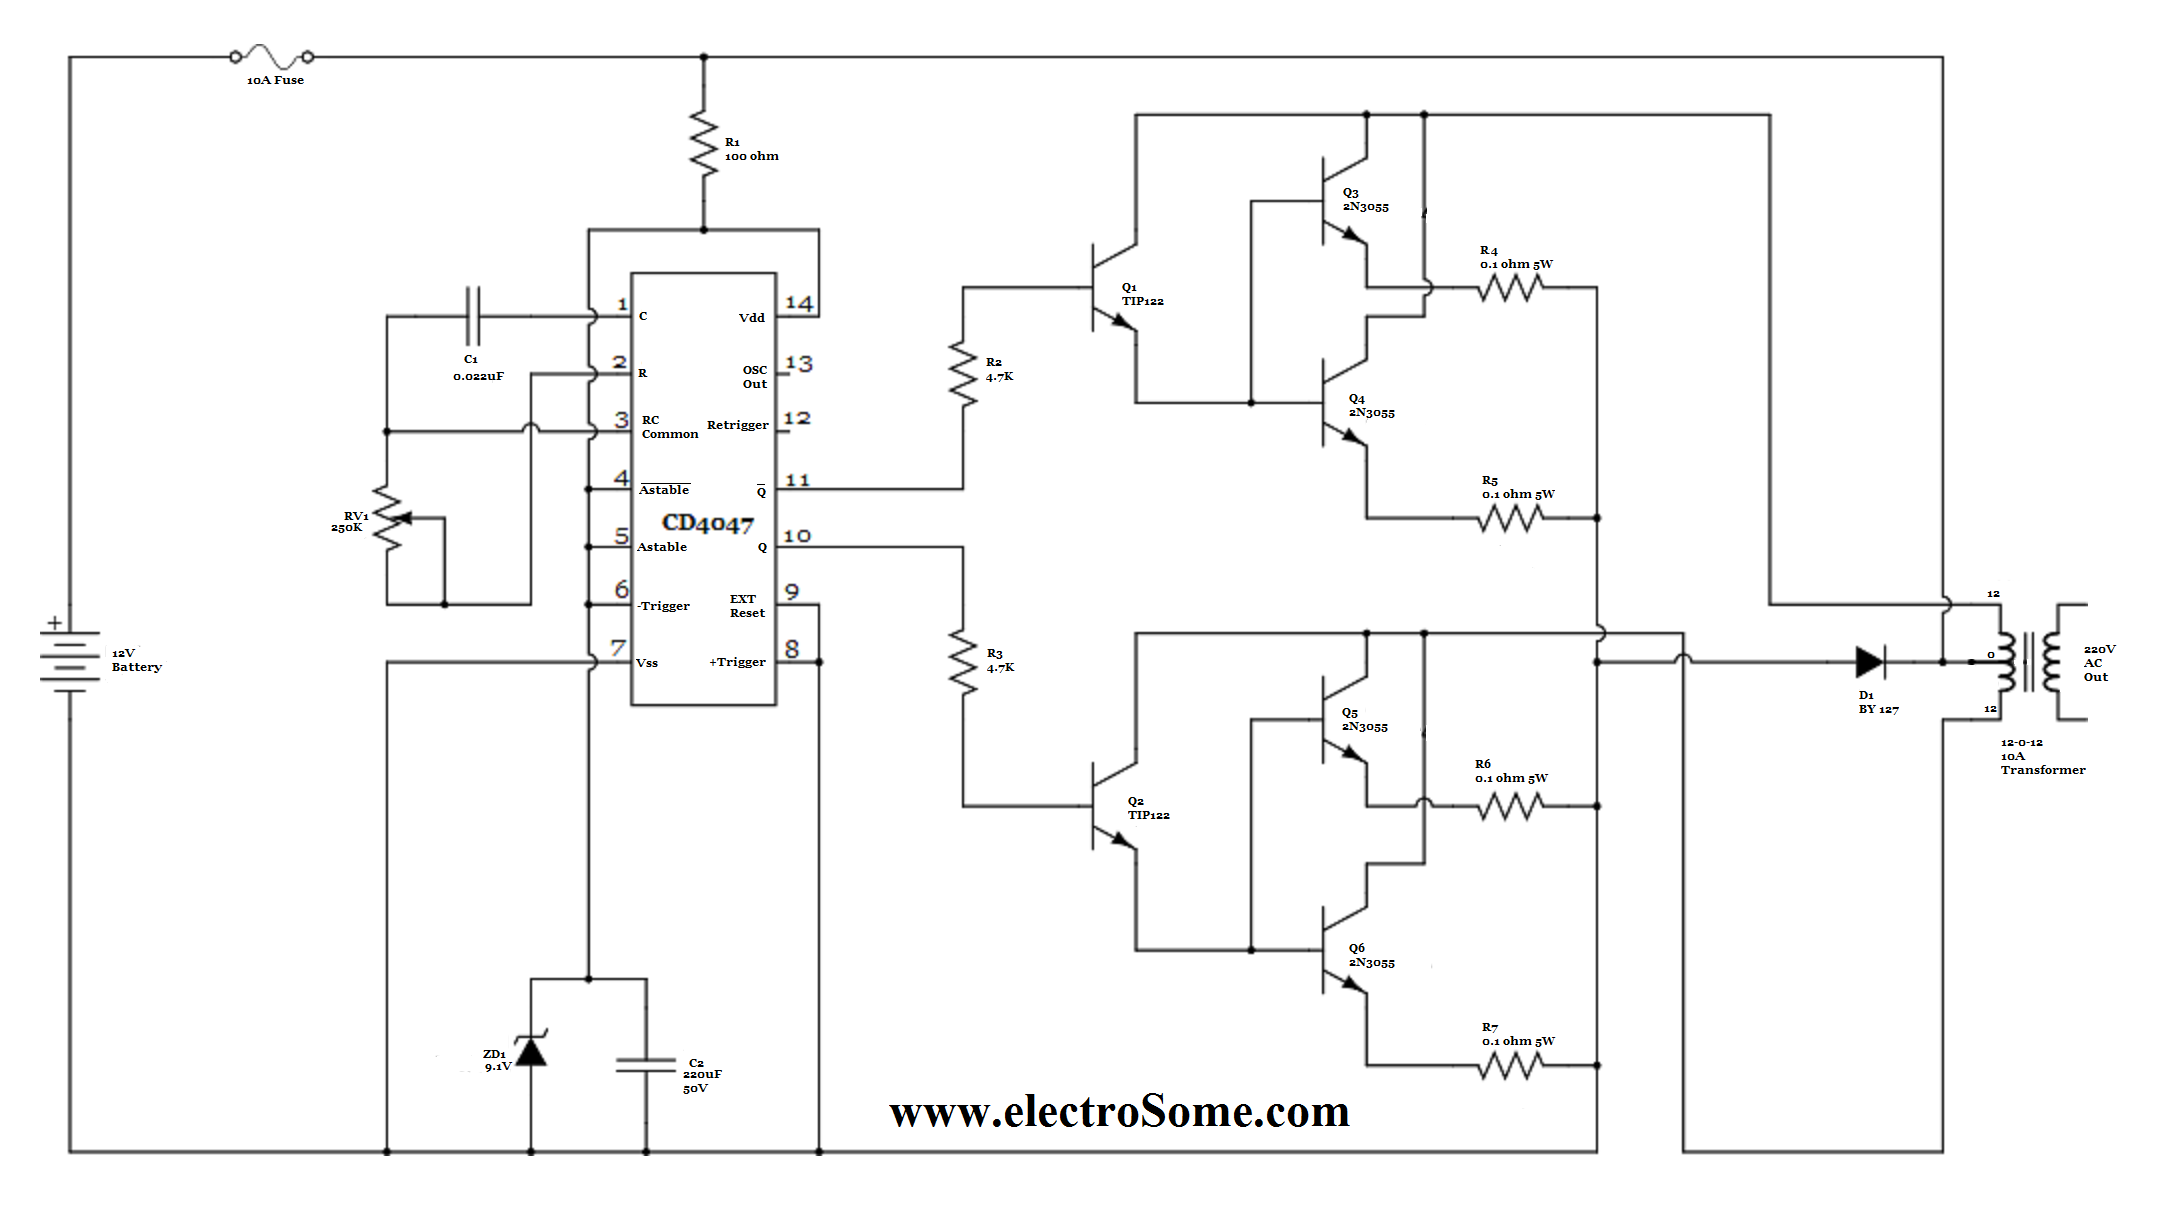 Low Power Square Wave Inverter Circuit Using Cd4047 Simplest Lamp Flasher Electronic Circuits And Diagram Simple